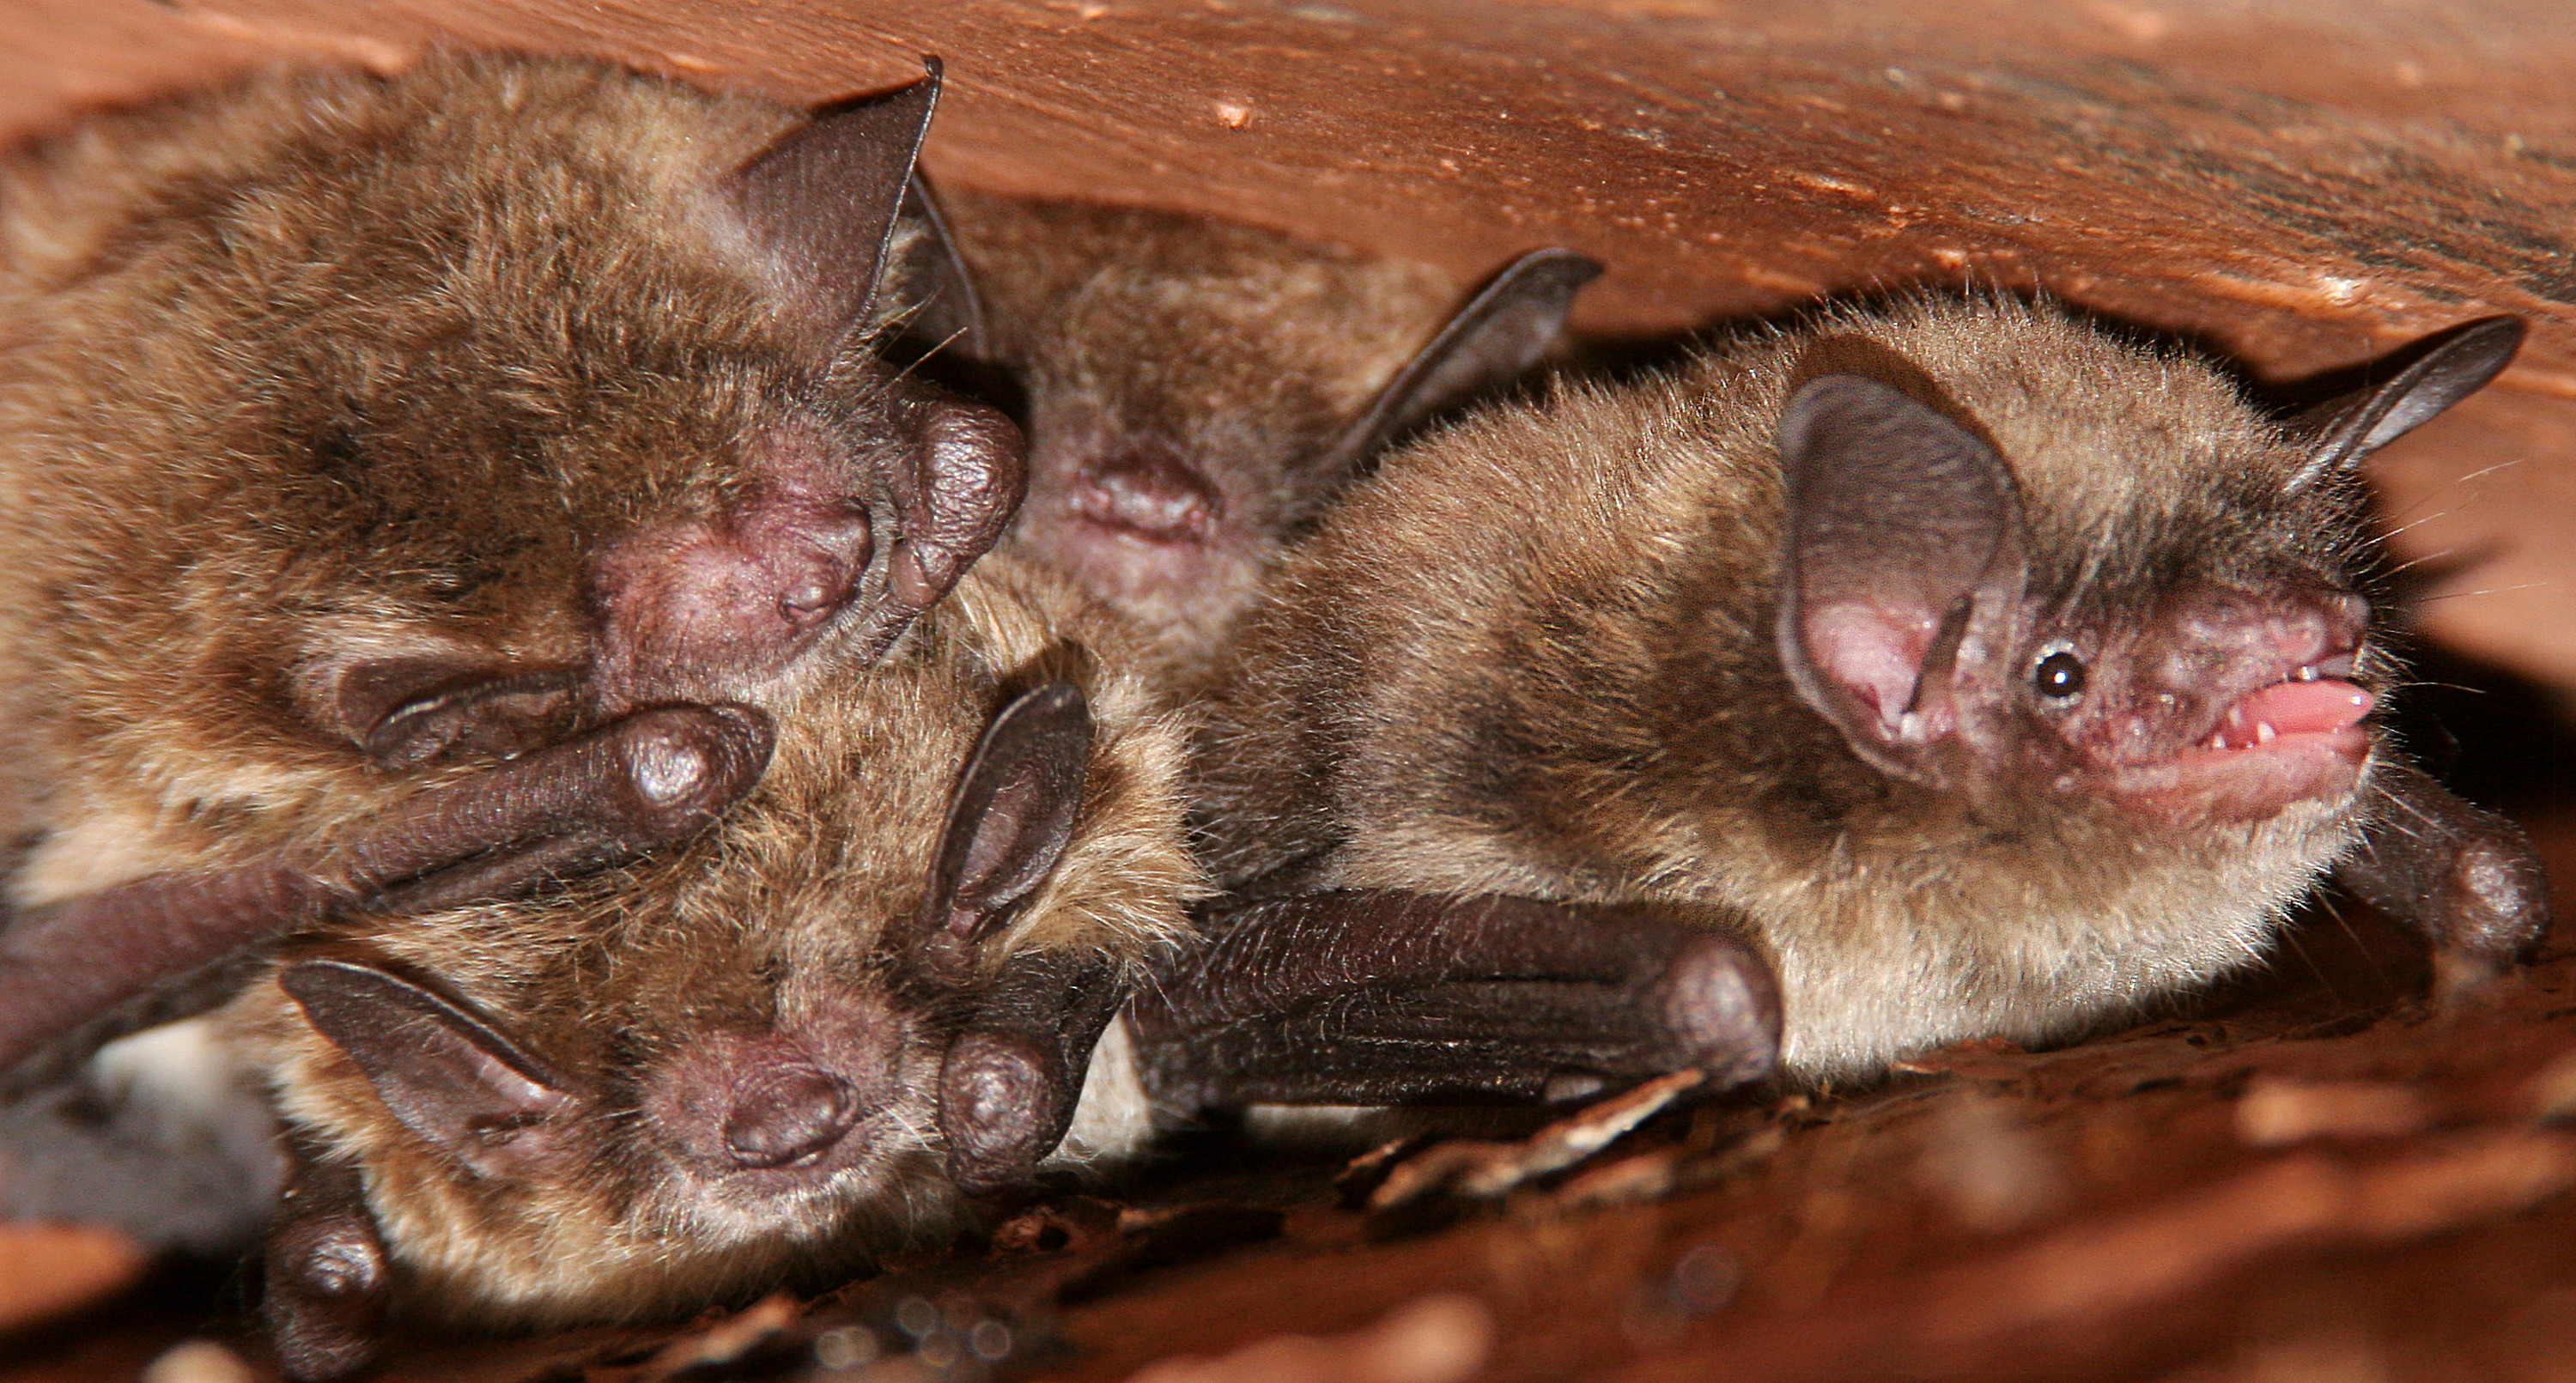 bats in attic in alexandria va is also a very common problem that our company gets calls for on a daily basis alexandria va is located in the tidal river